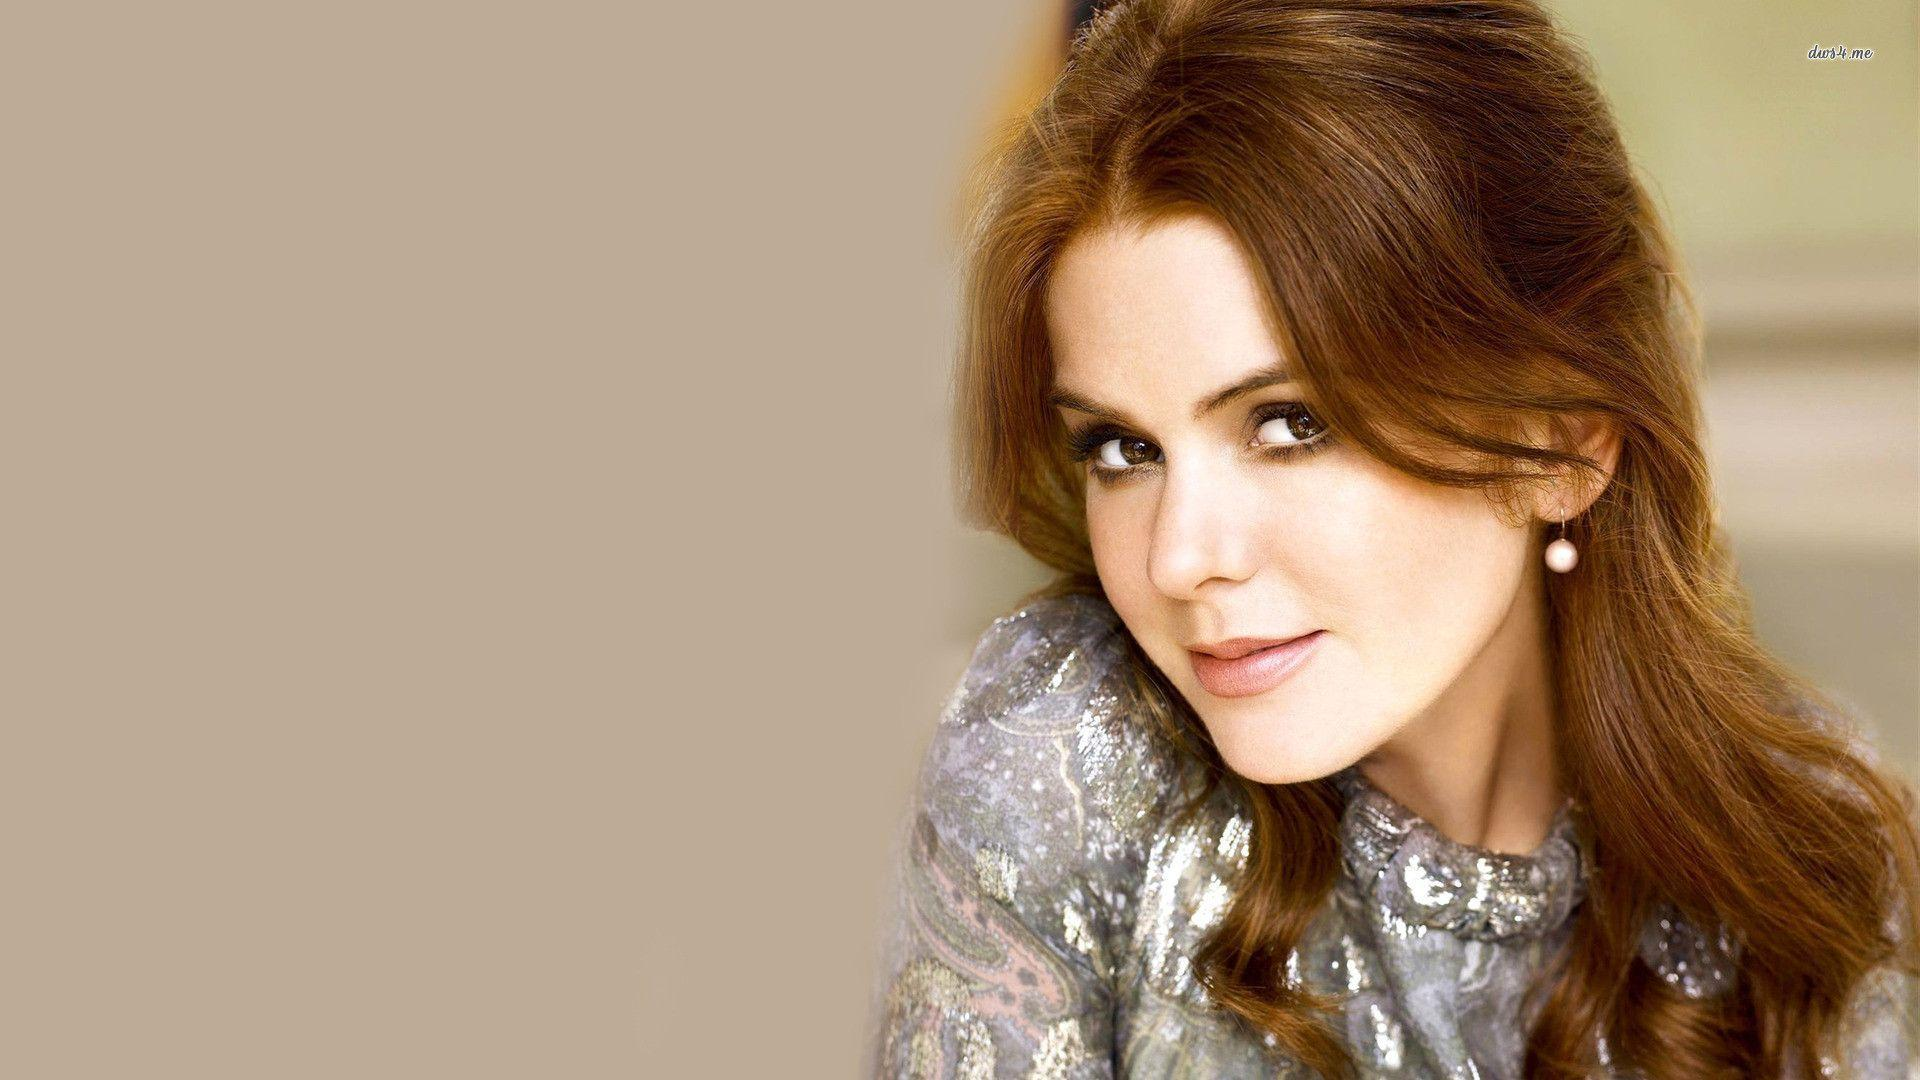 Isla Fisher Wallpapers - Wallpaper Cave